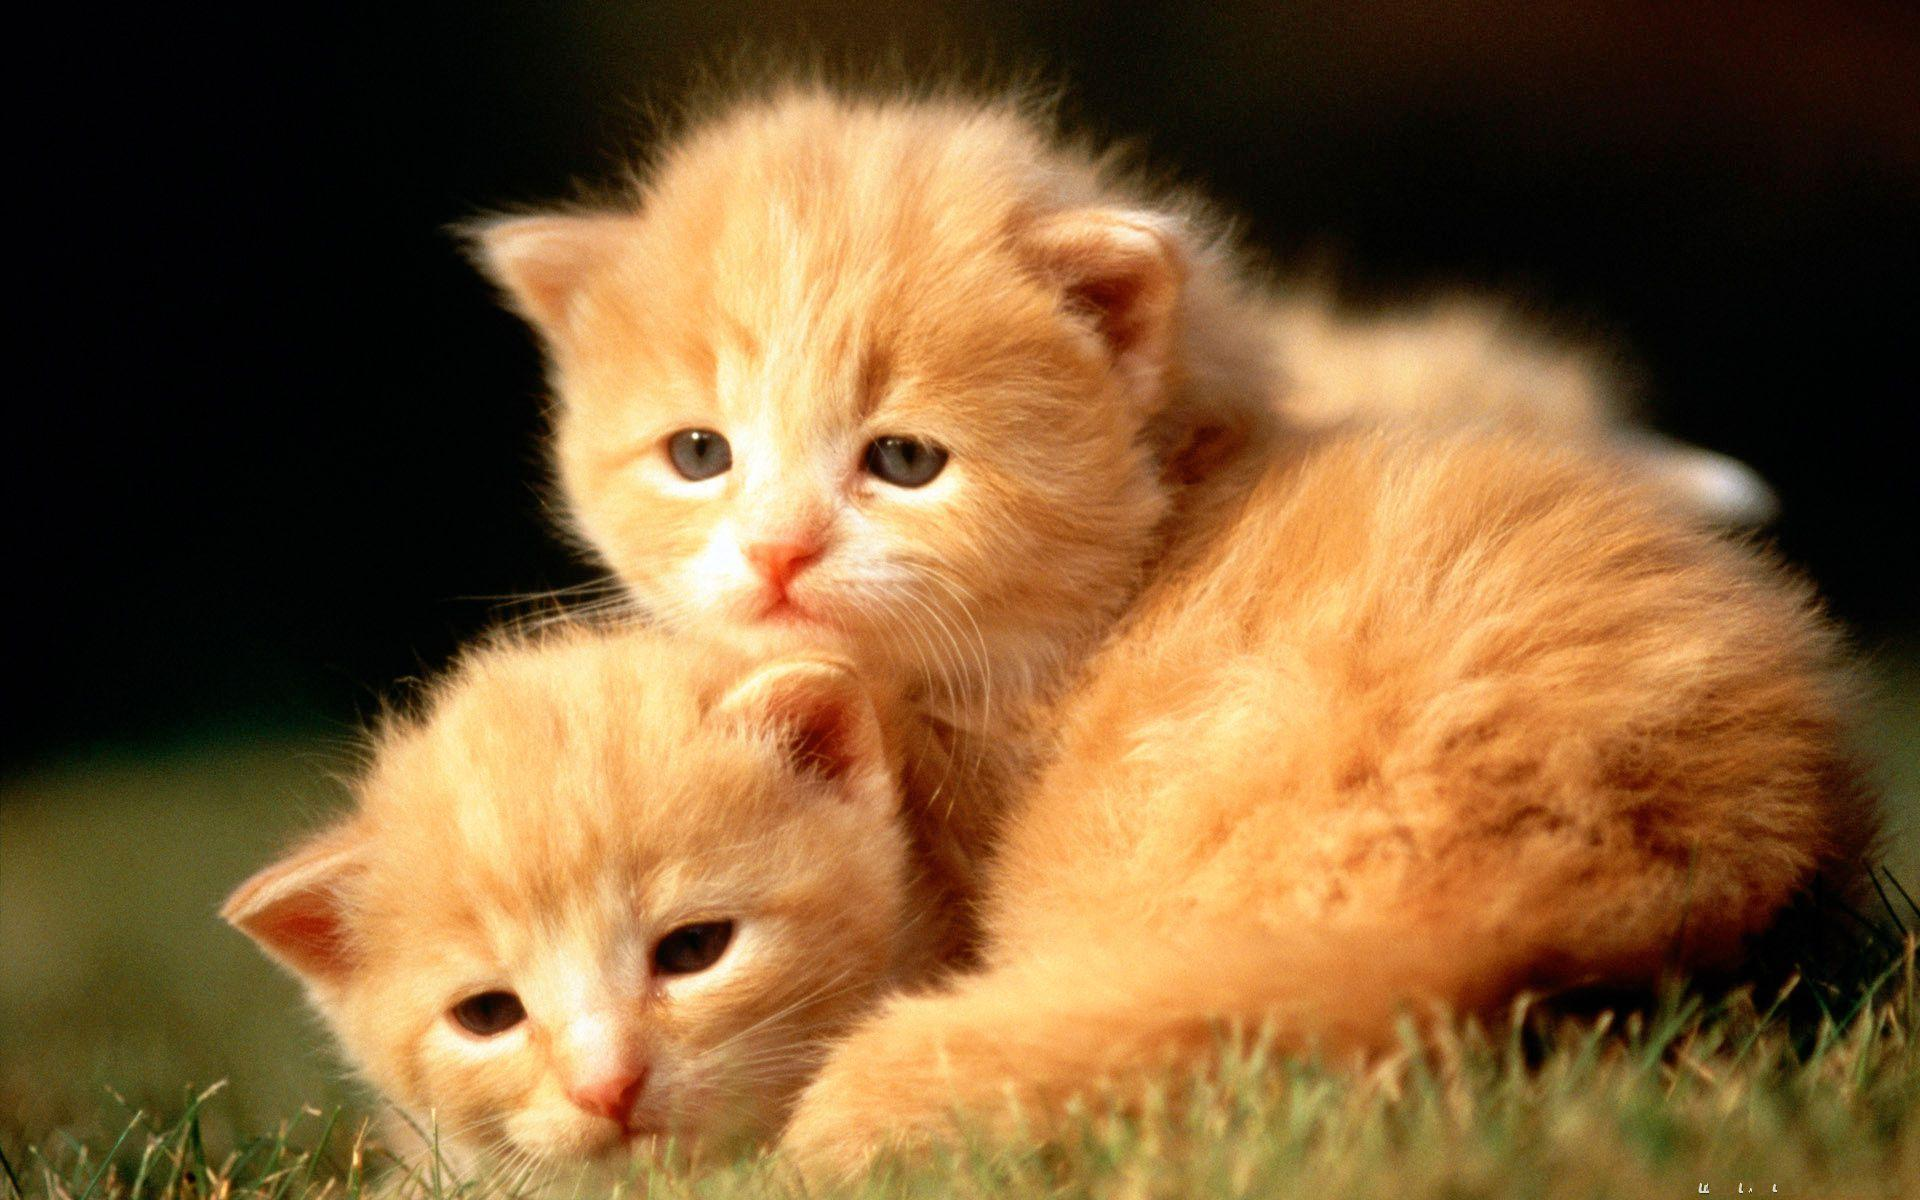 Cute Baby Animal Wallpapers - Wallpaper Cave